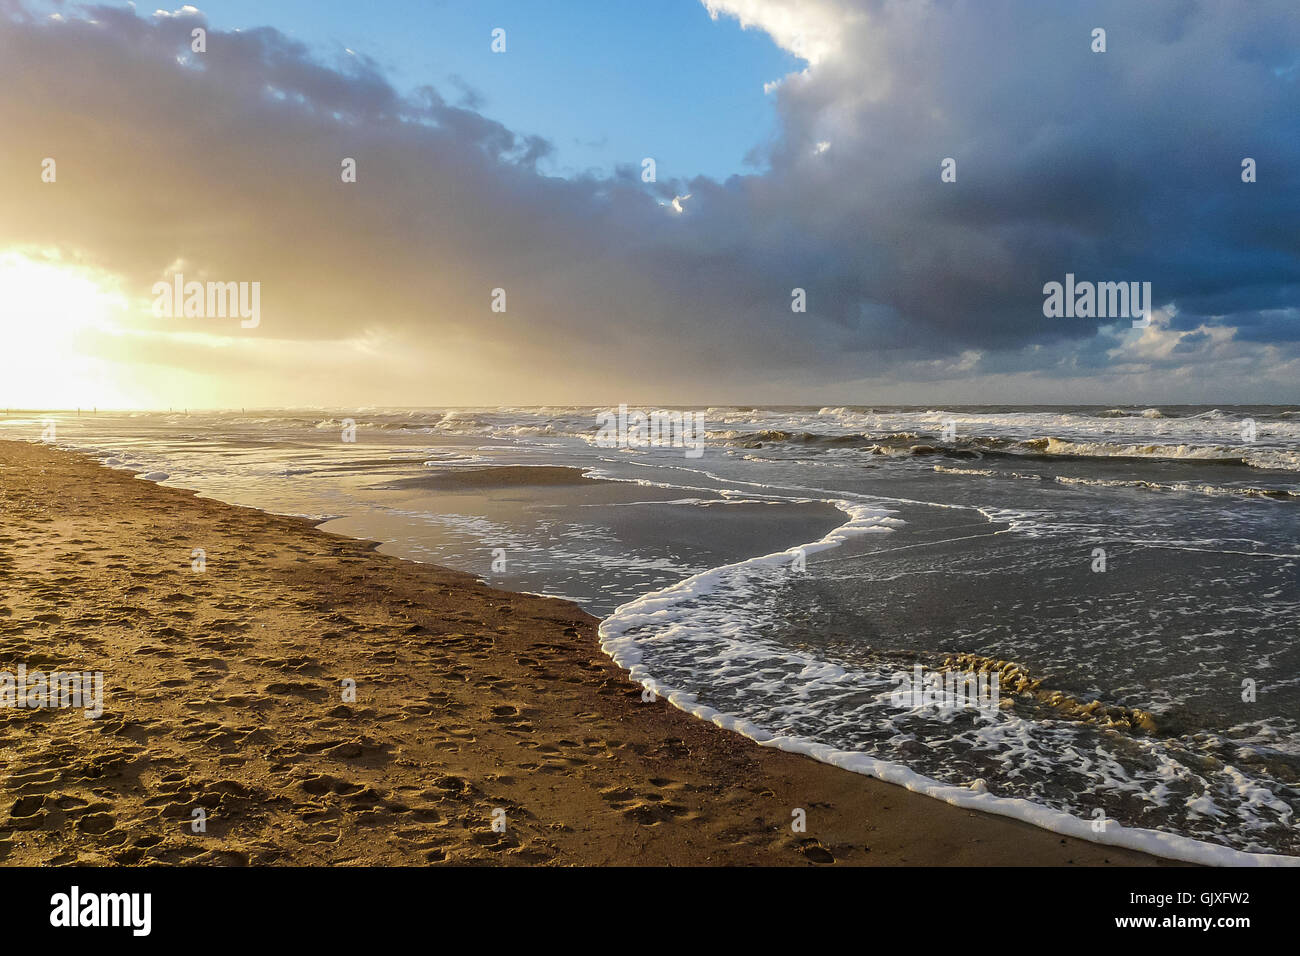 At the Beach of Norderney in Germany Stock Photo